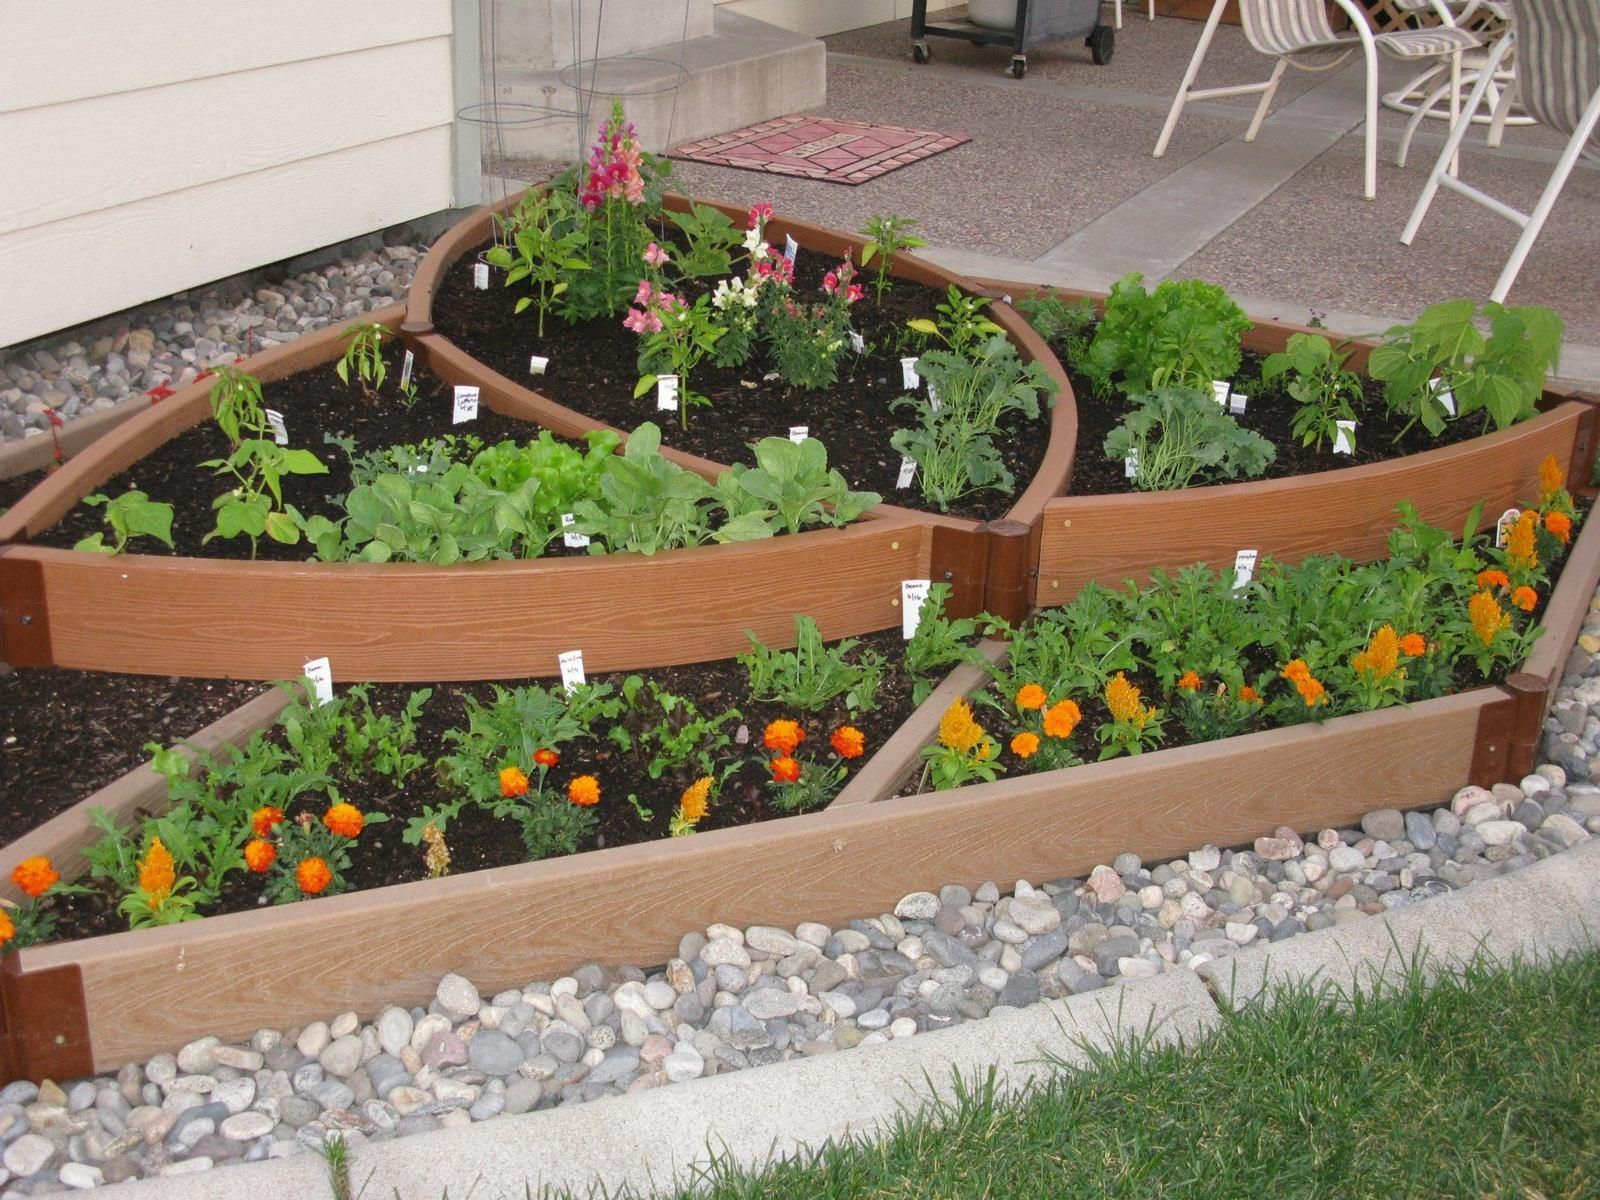 Vegetable Garden Ideas Designs Raised Gardens do it yourself gardening with raised garden beds | gardens, raised